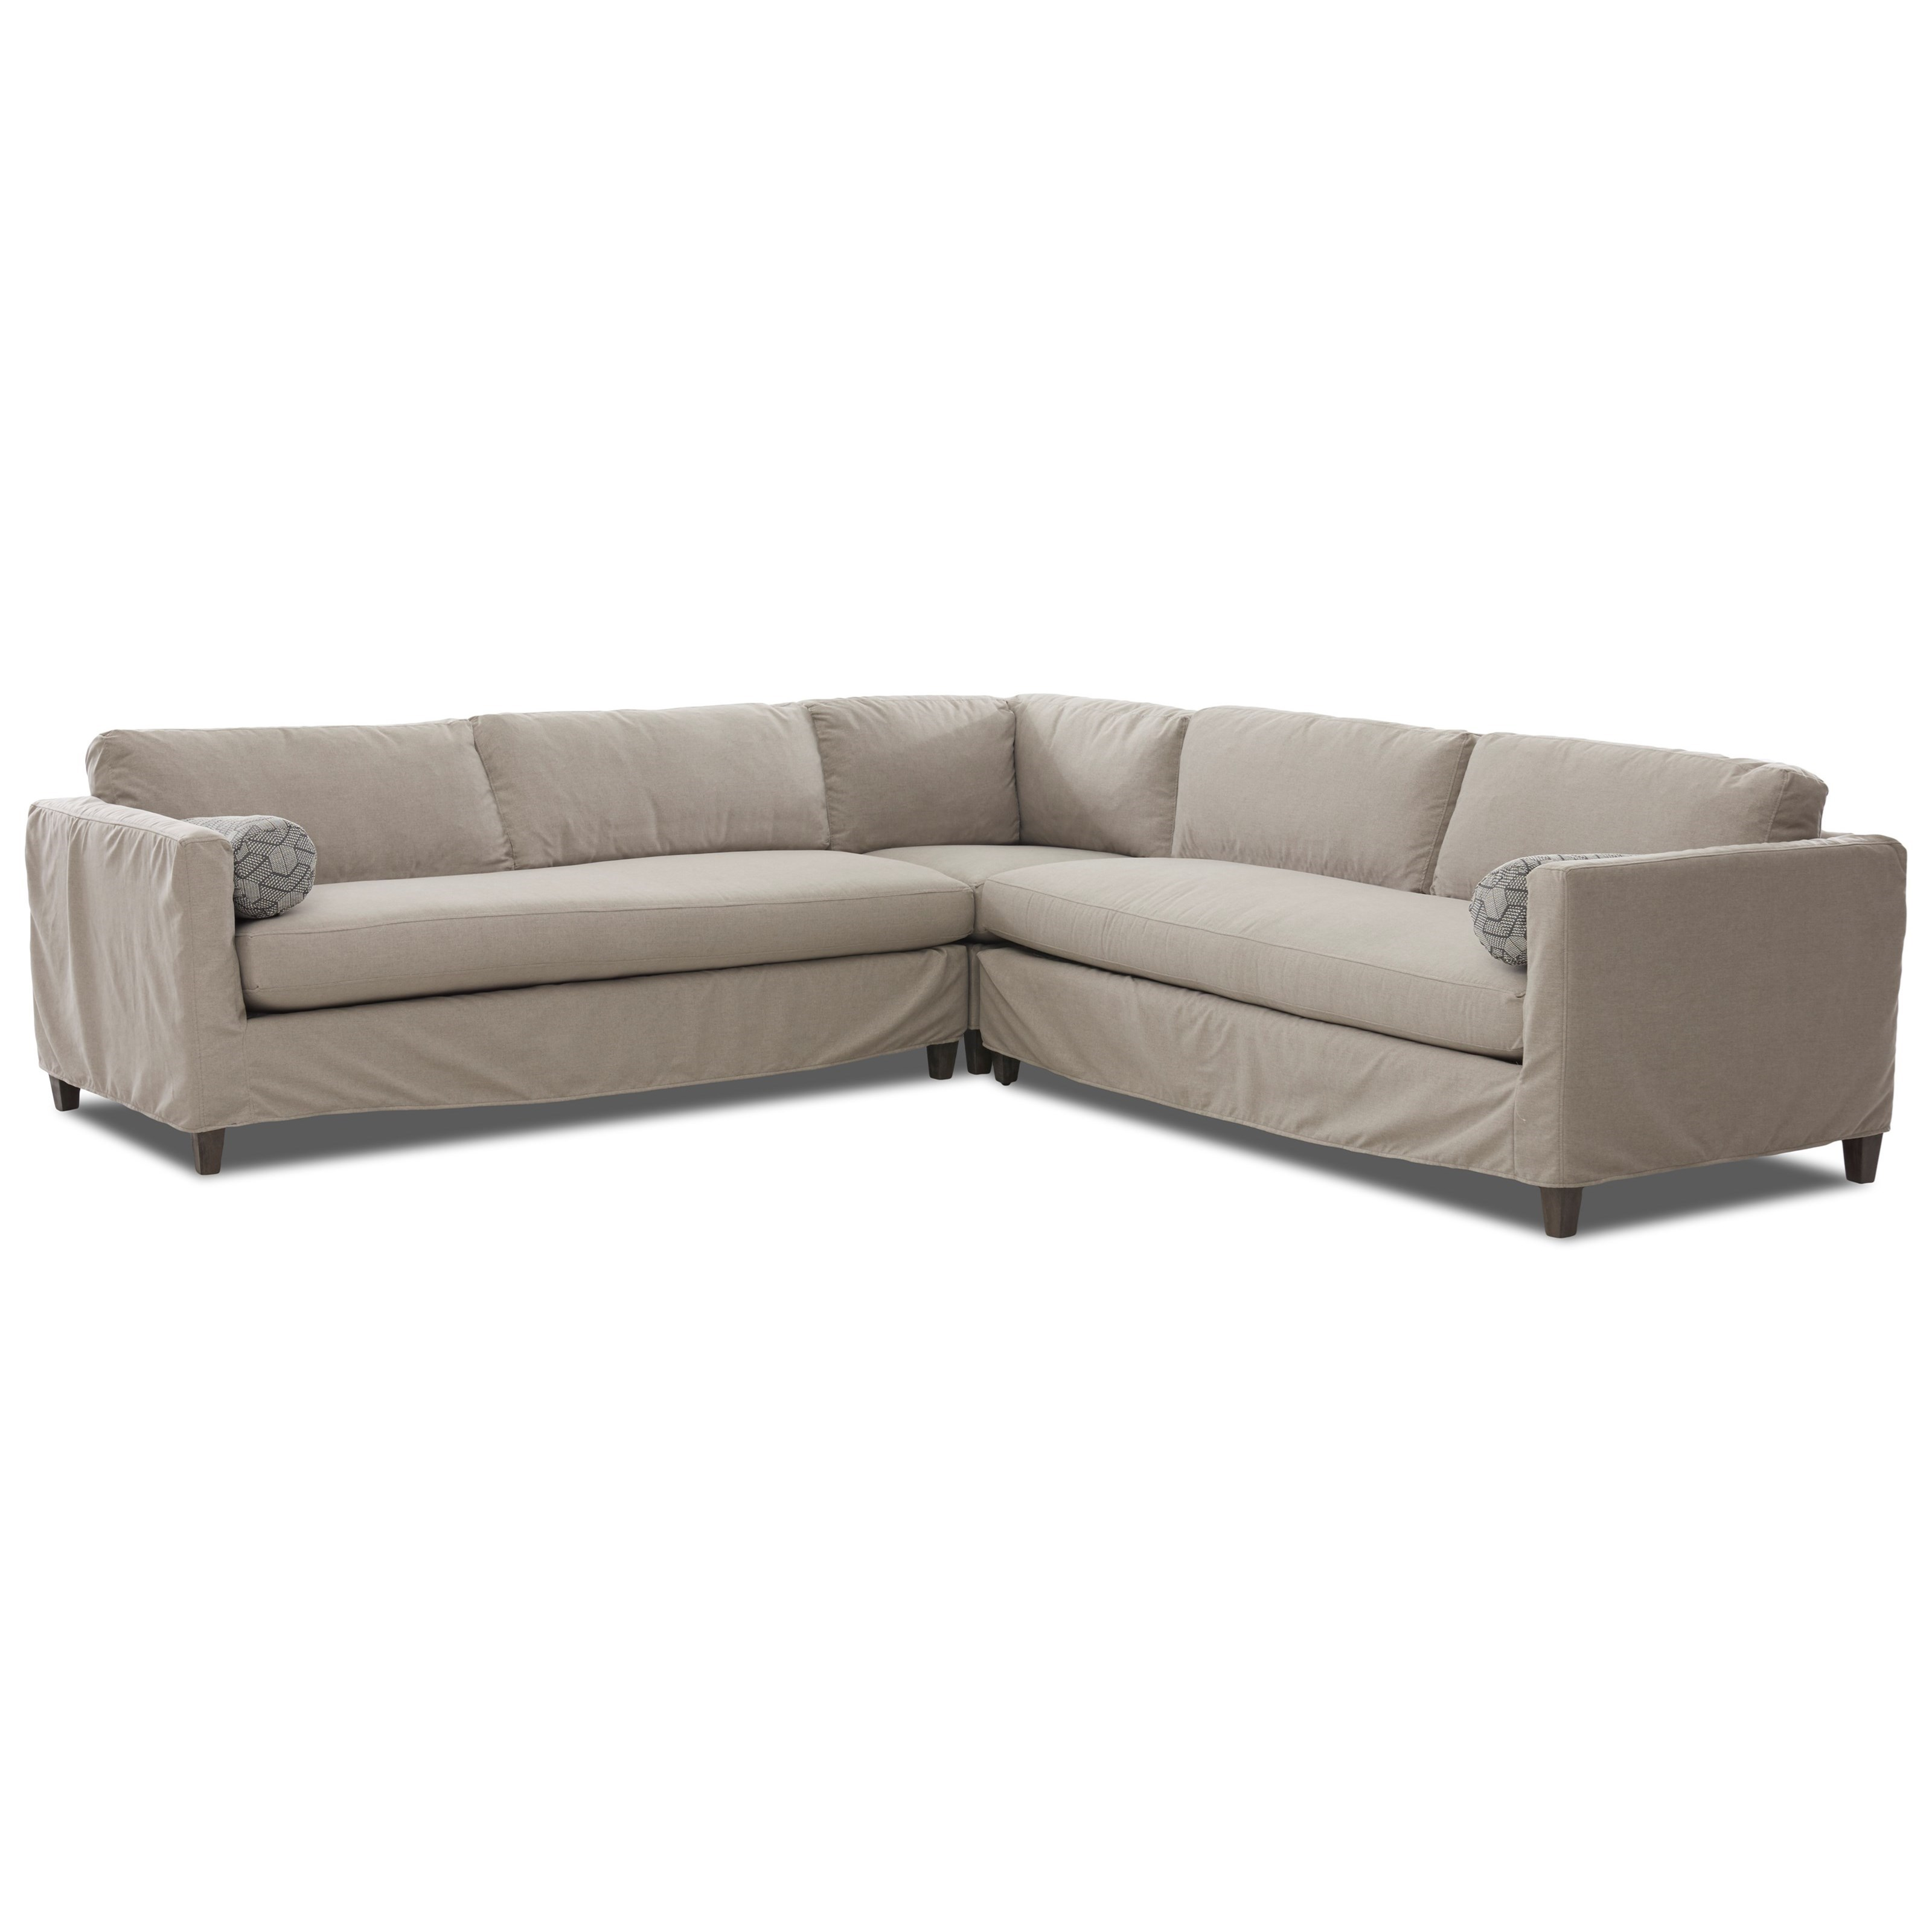 3-Piece Slipcover Sectional with Down Blend Cushions